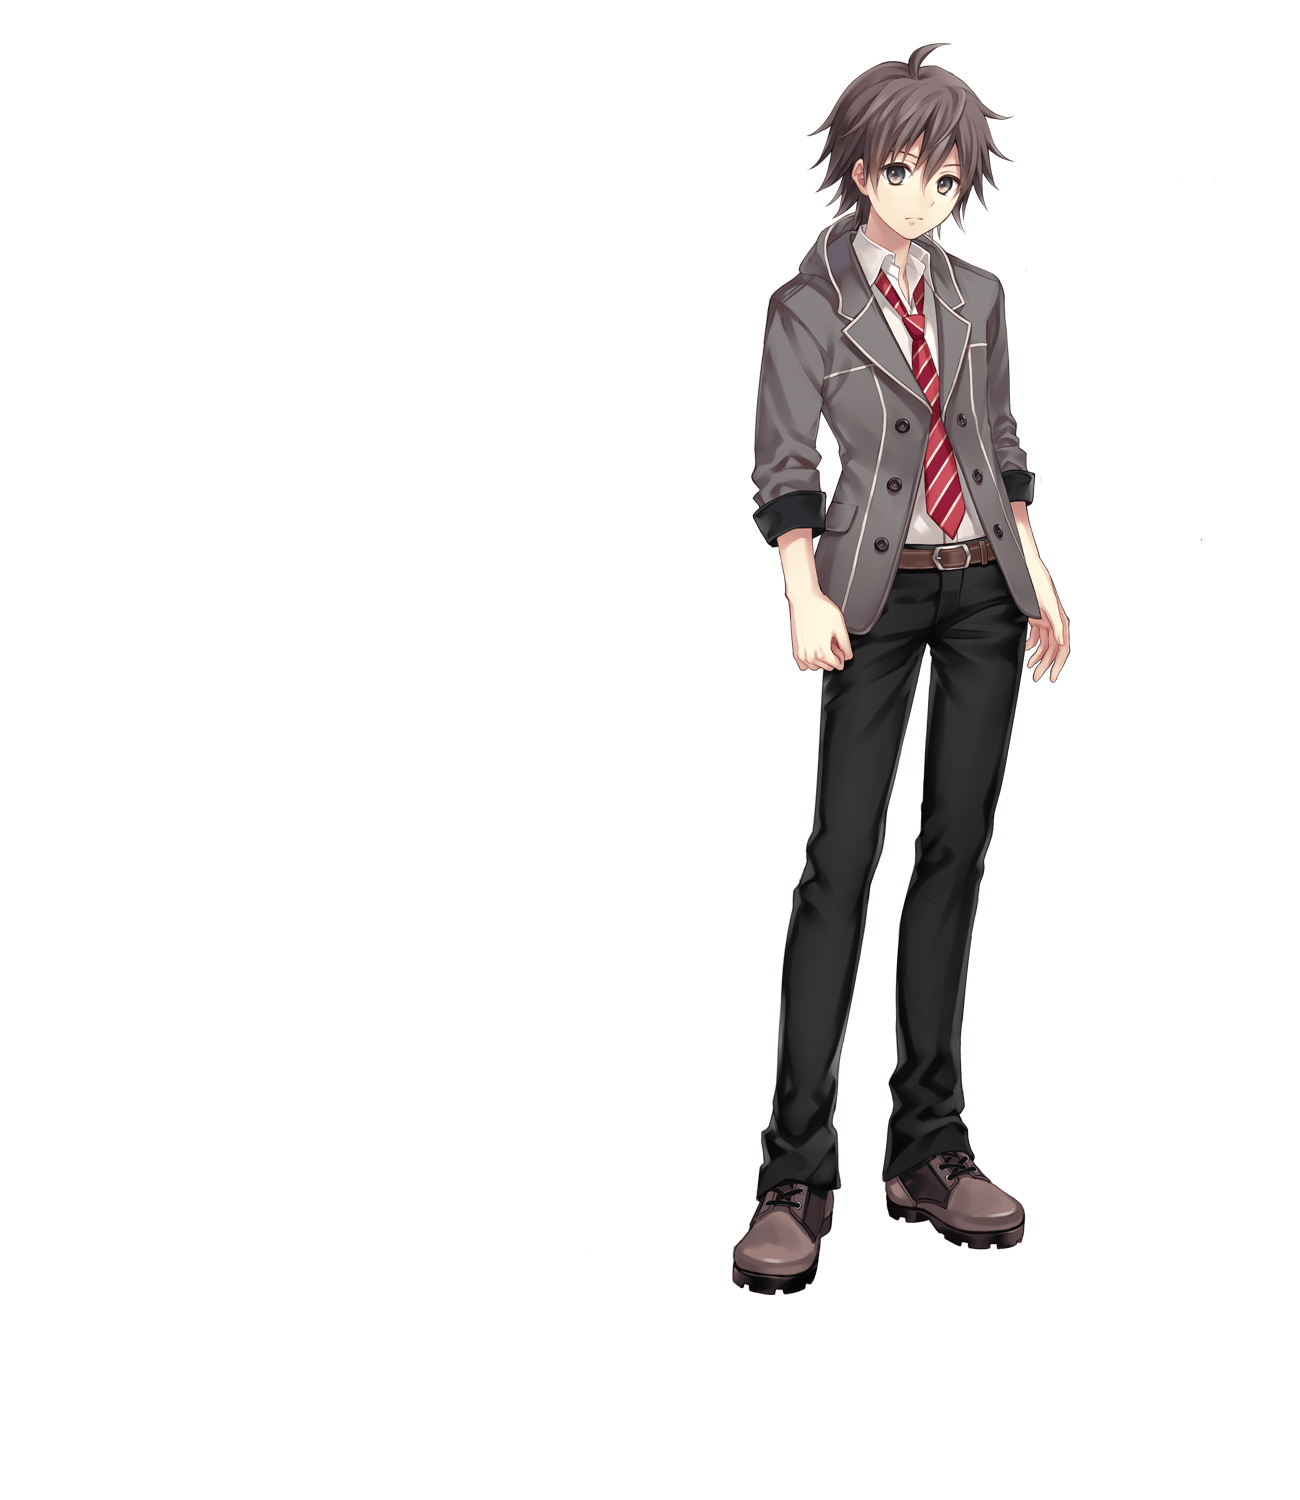 Takuto Cosplay Costume from Omega Quintet